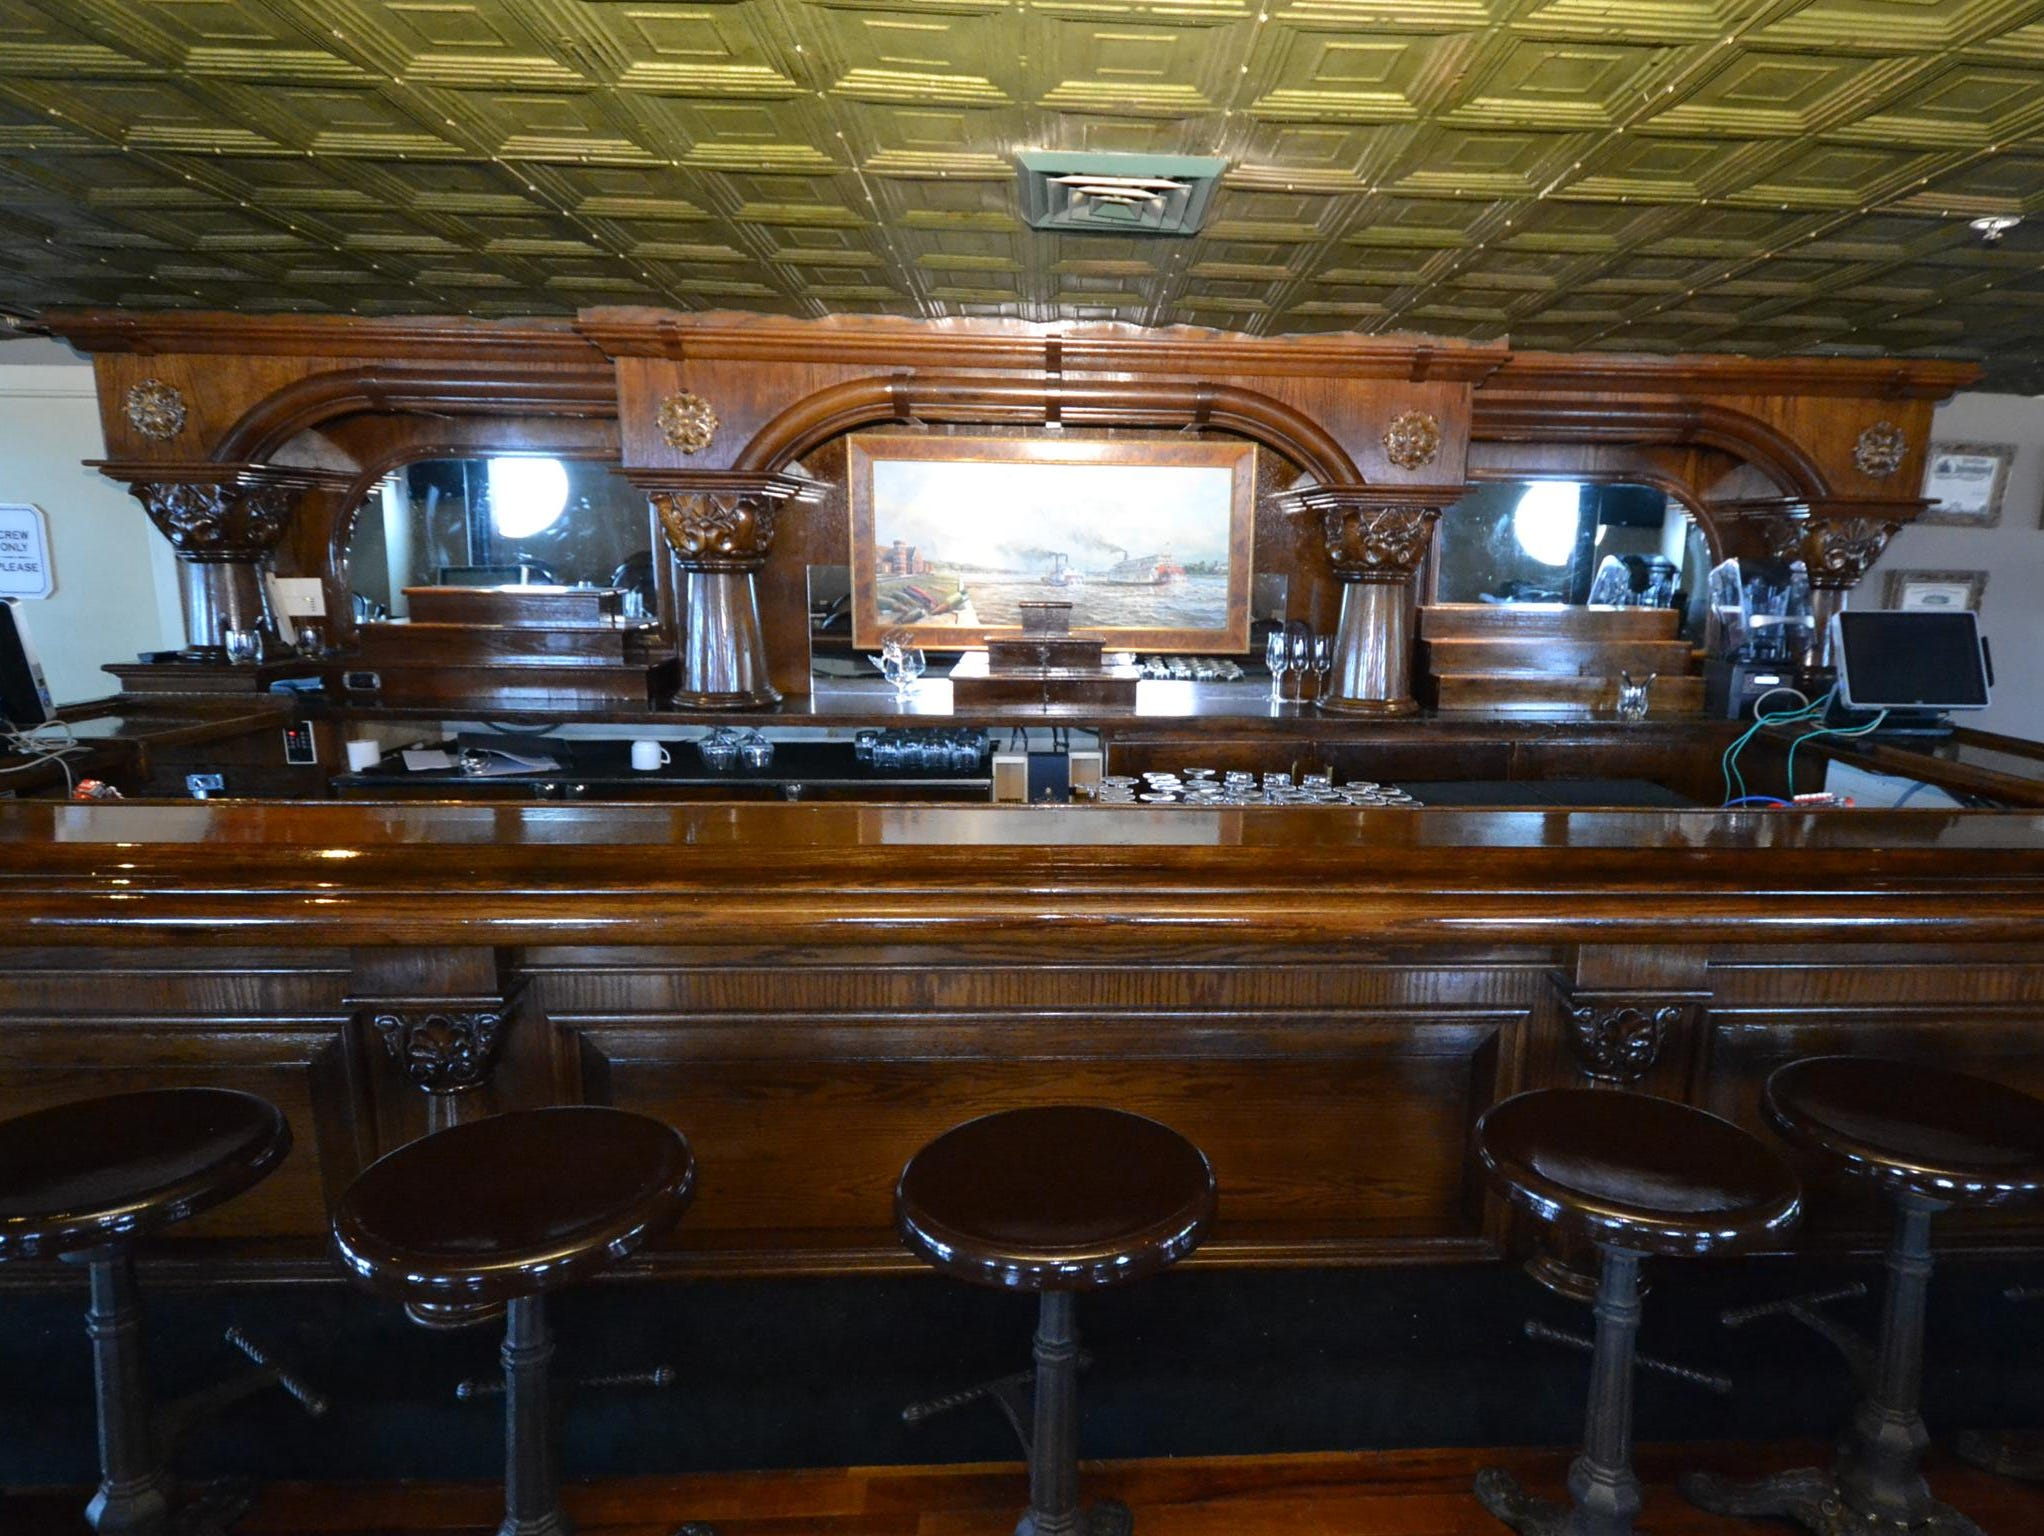 The elegant wooden bar at the center of the Engine Room Bar.